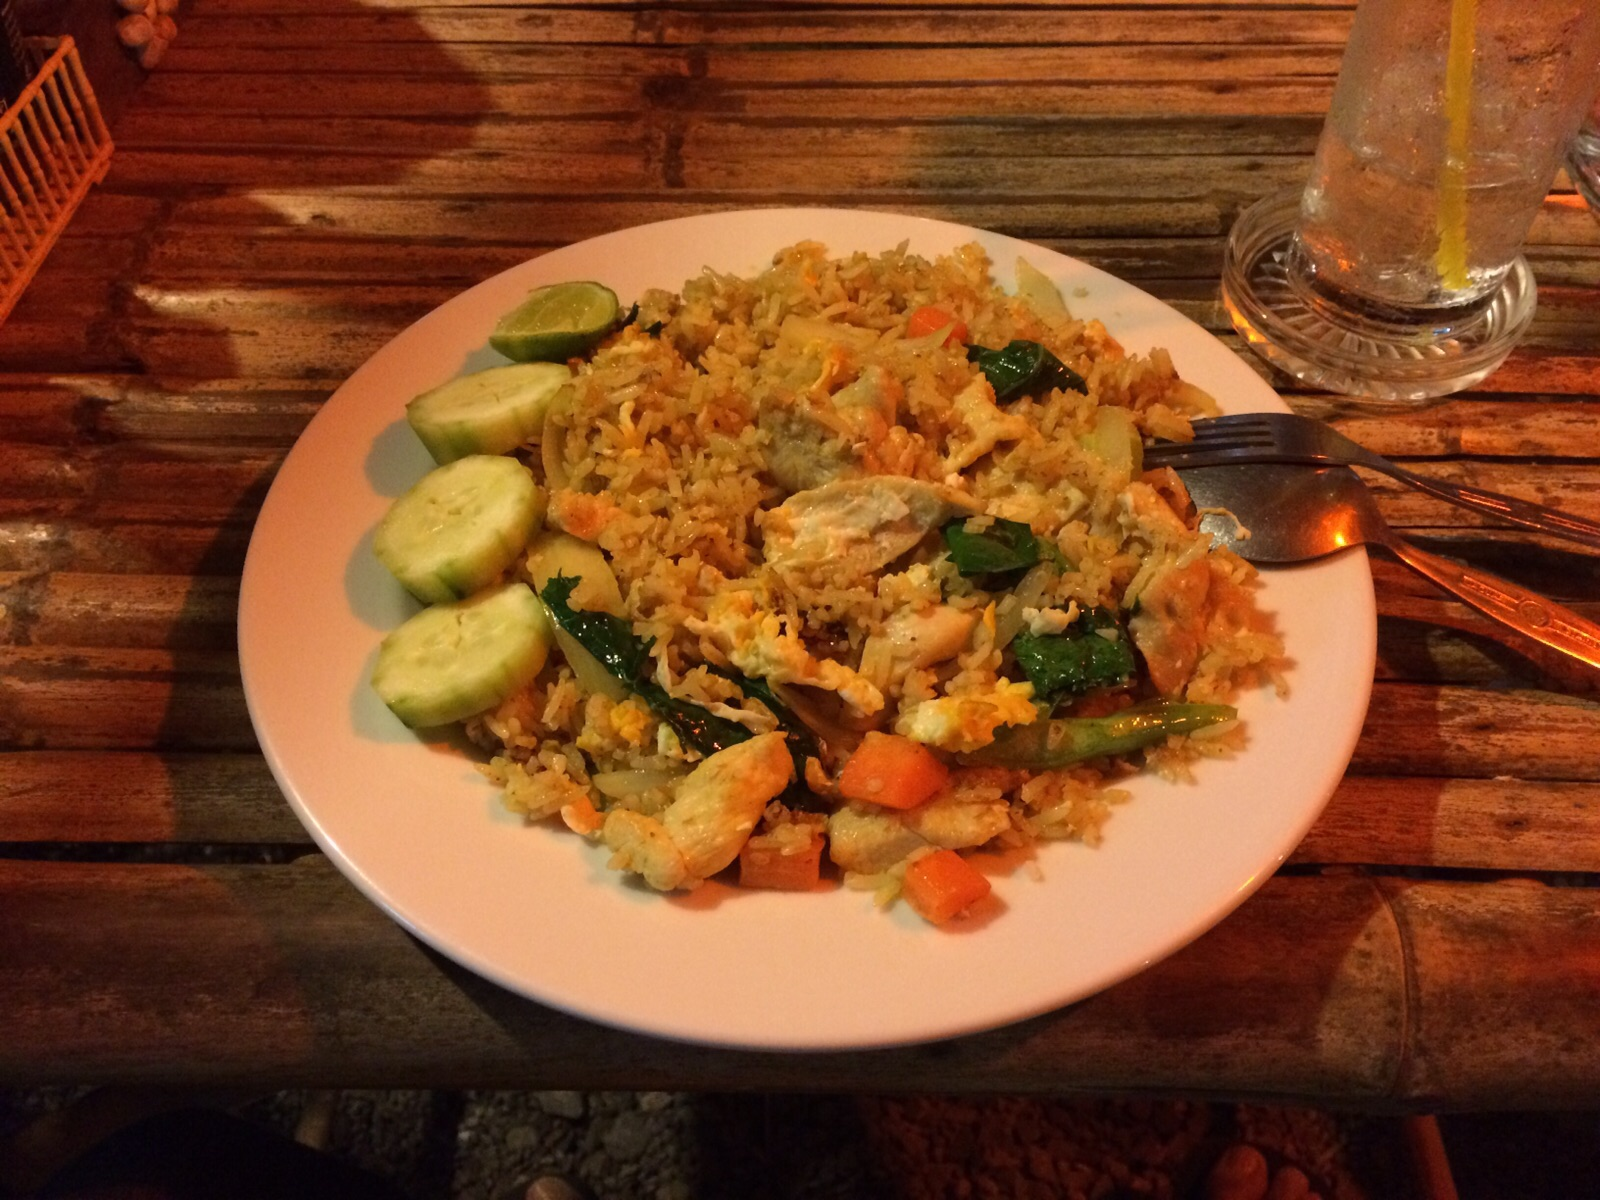 How to avoid the Bali belly - eat a fully cooked Nasi Goreng. YUM!